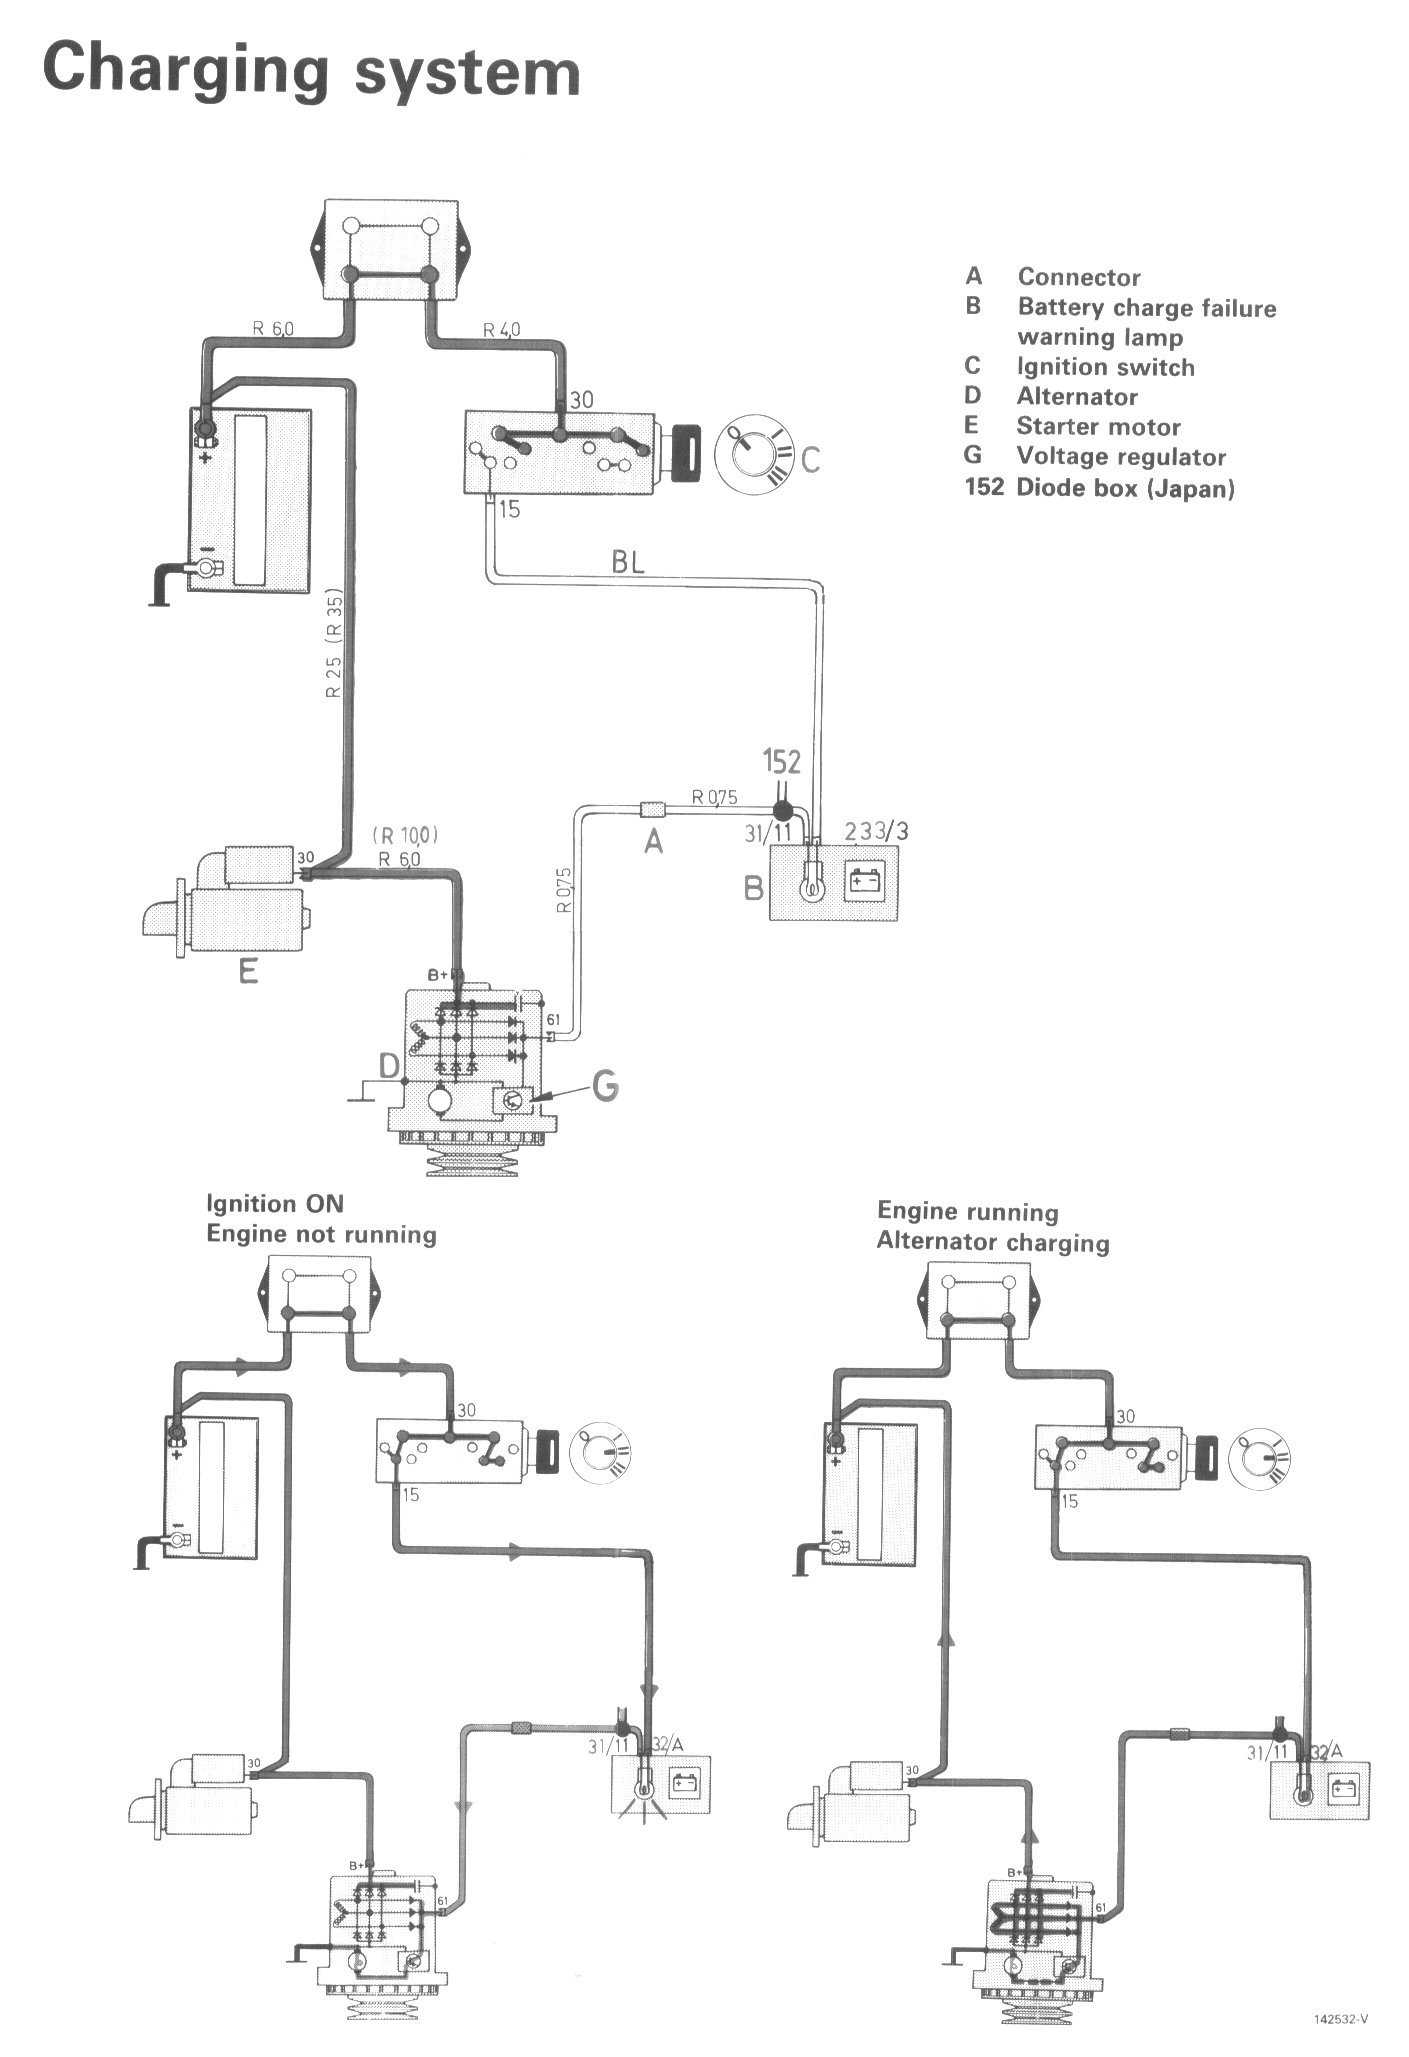 Volvo 240 Fuse Diagram Wiring Library 1990 F53 Diagrams U2022 740 Radio